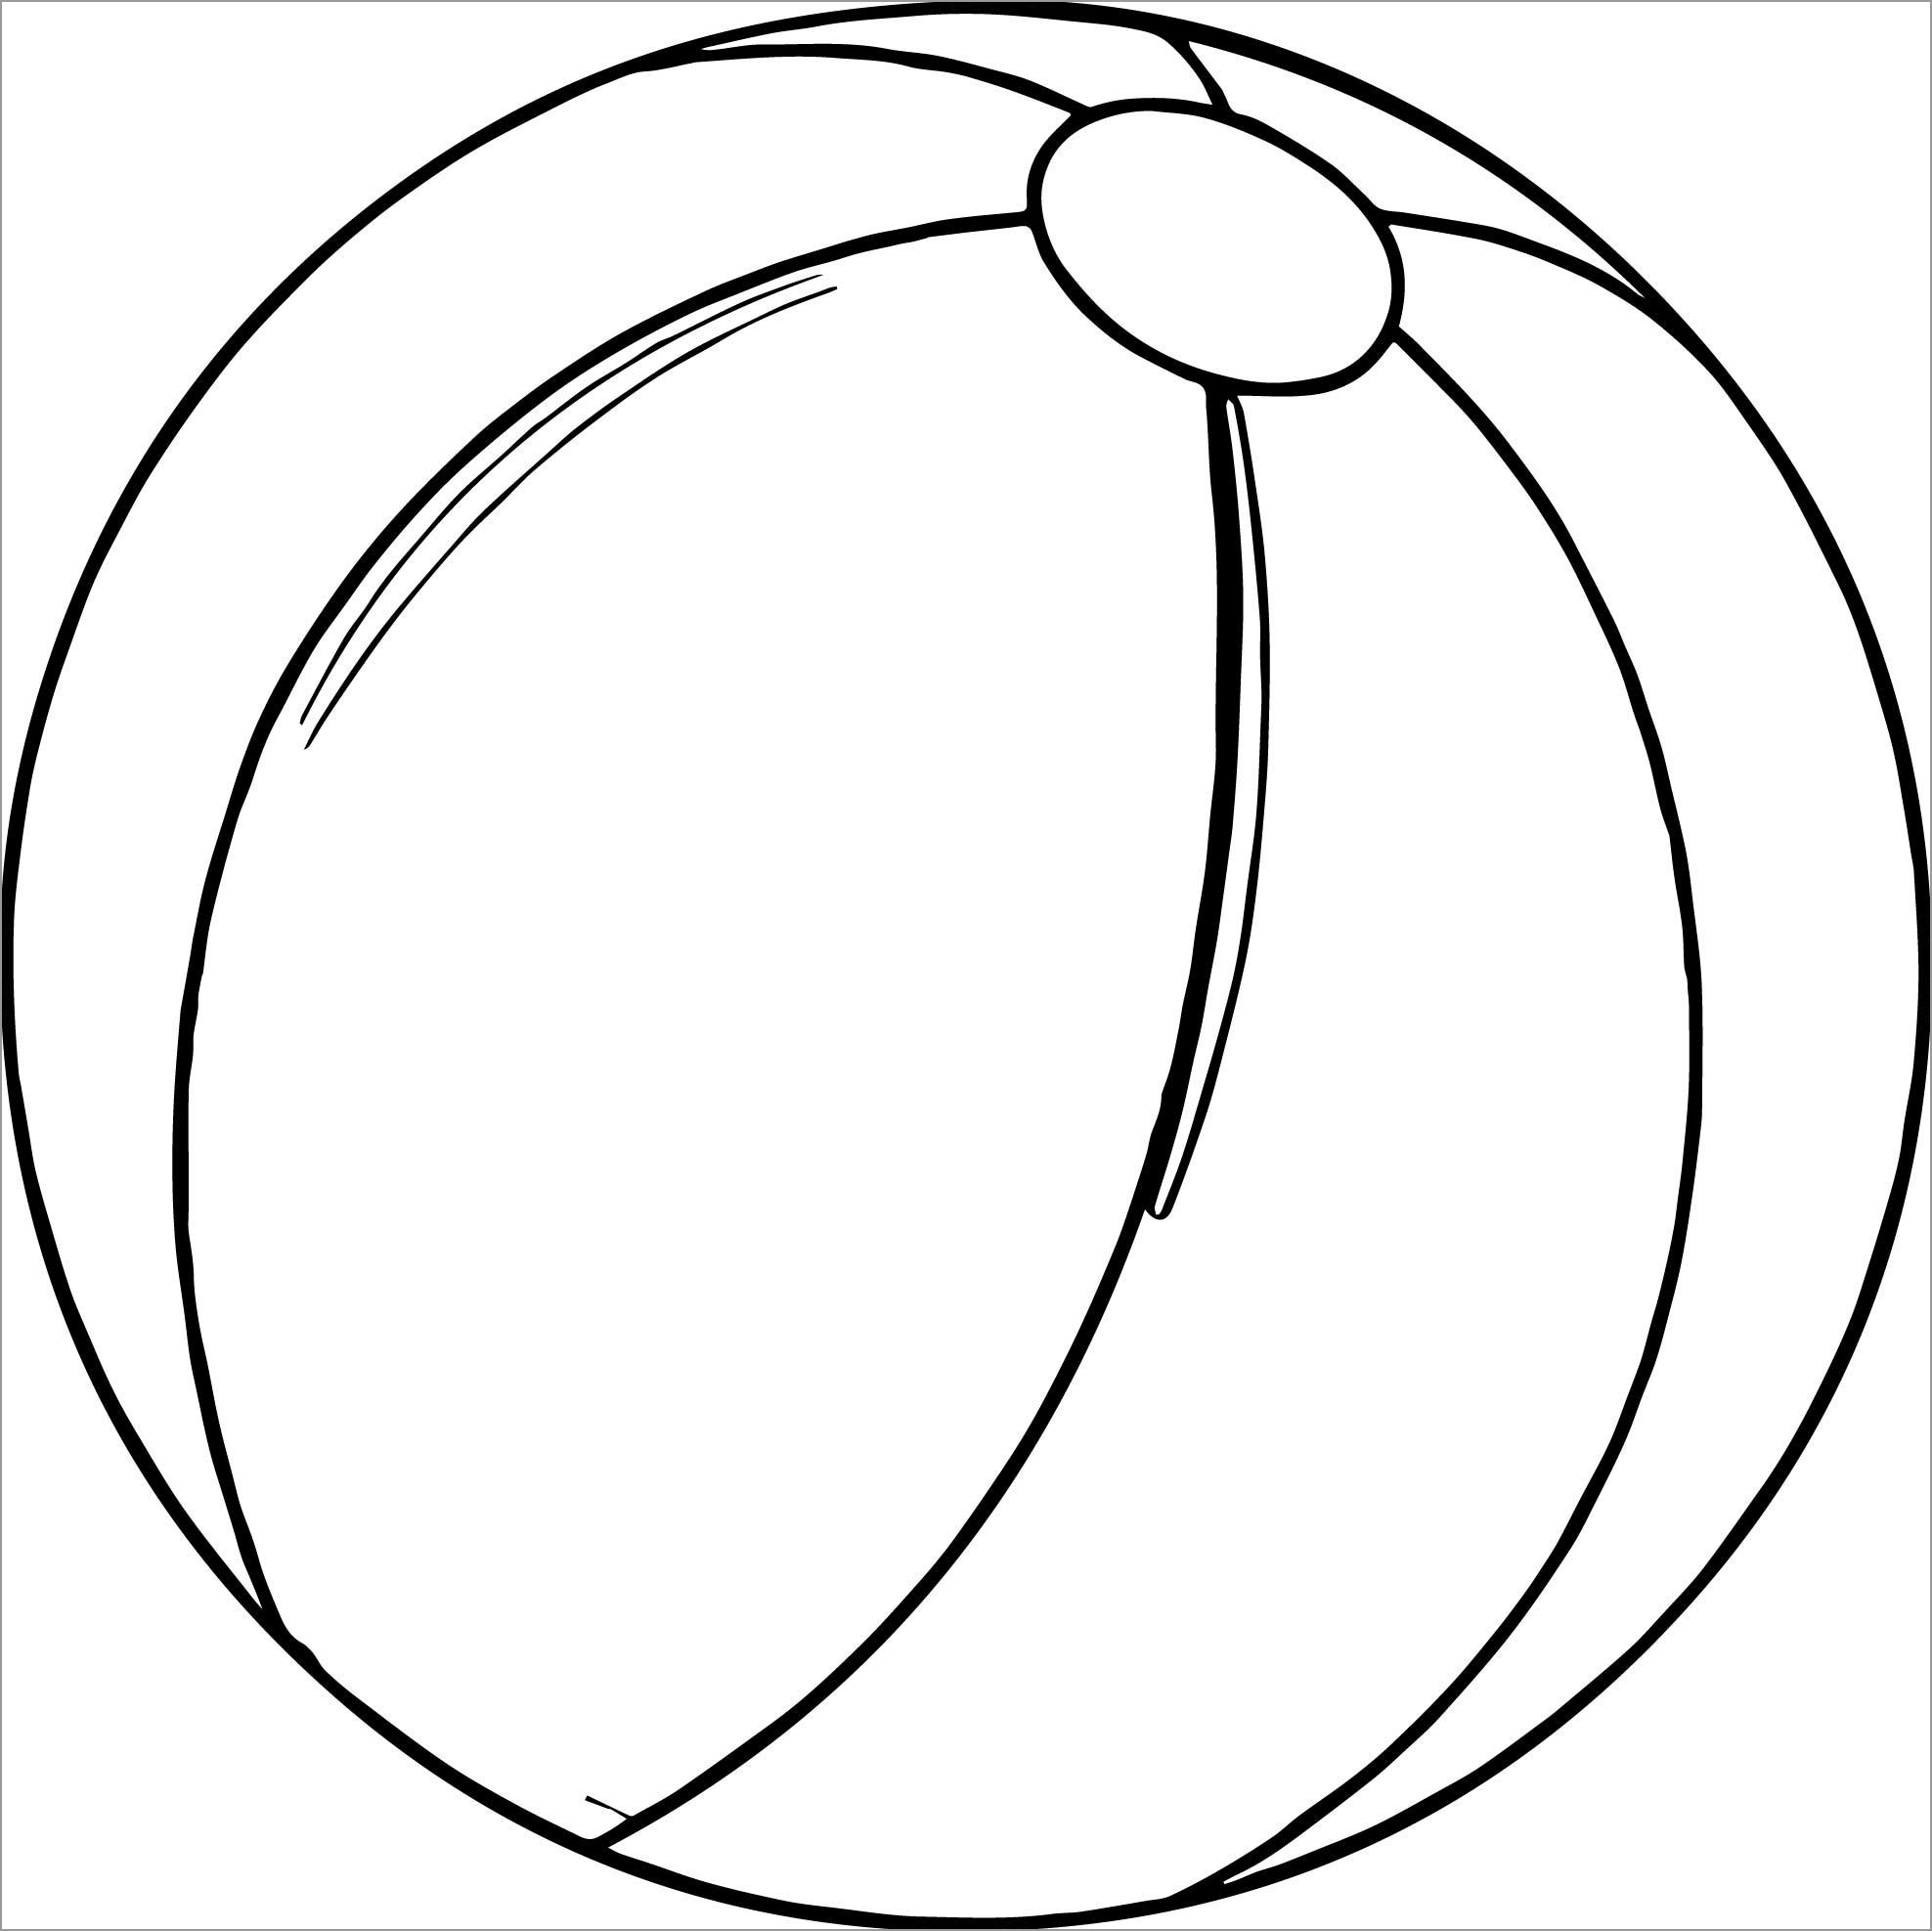 colouring picture of a ball pokemon ball coloring page at getcoloringscom free of picture a ball colouring